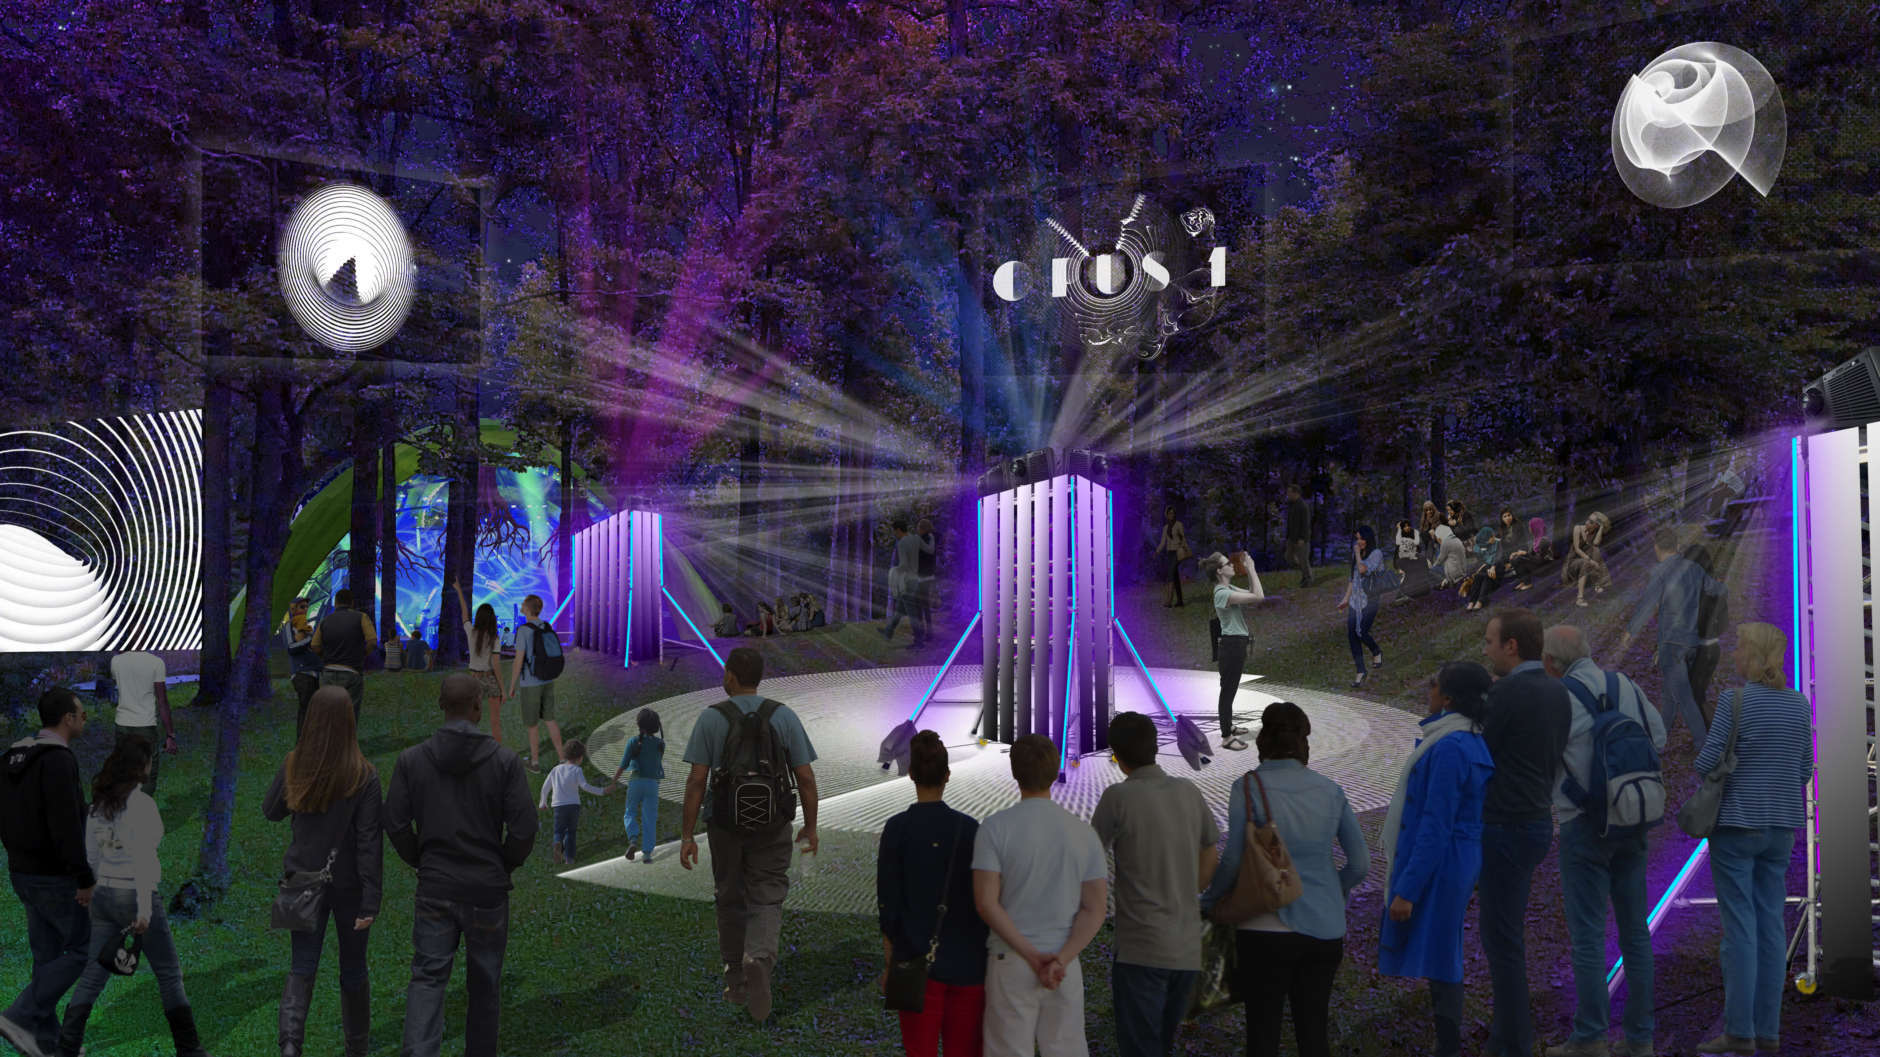 Merriweather Park at Symphony Woods will host the inaugural OPUS 1 festival, which comprises 11 large installations for all ages. (Rendering courtesy Wild Dogs International)